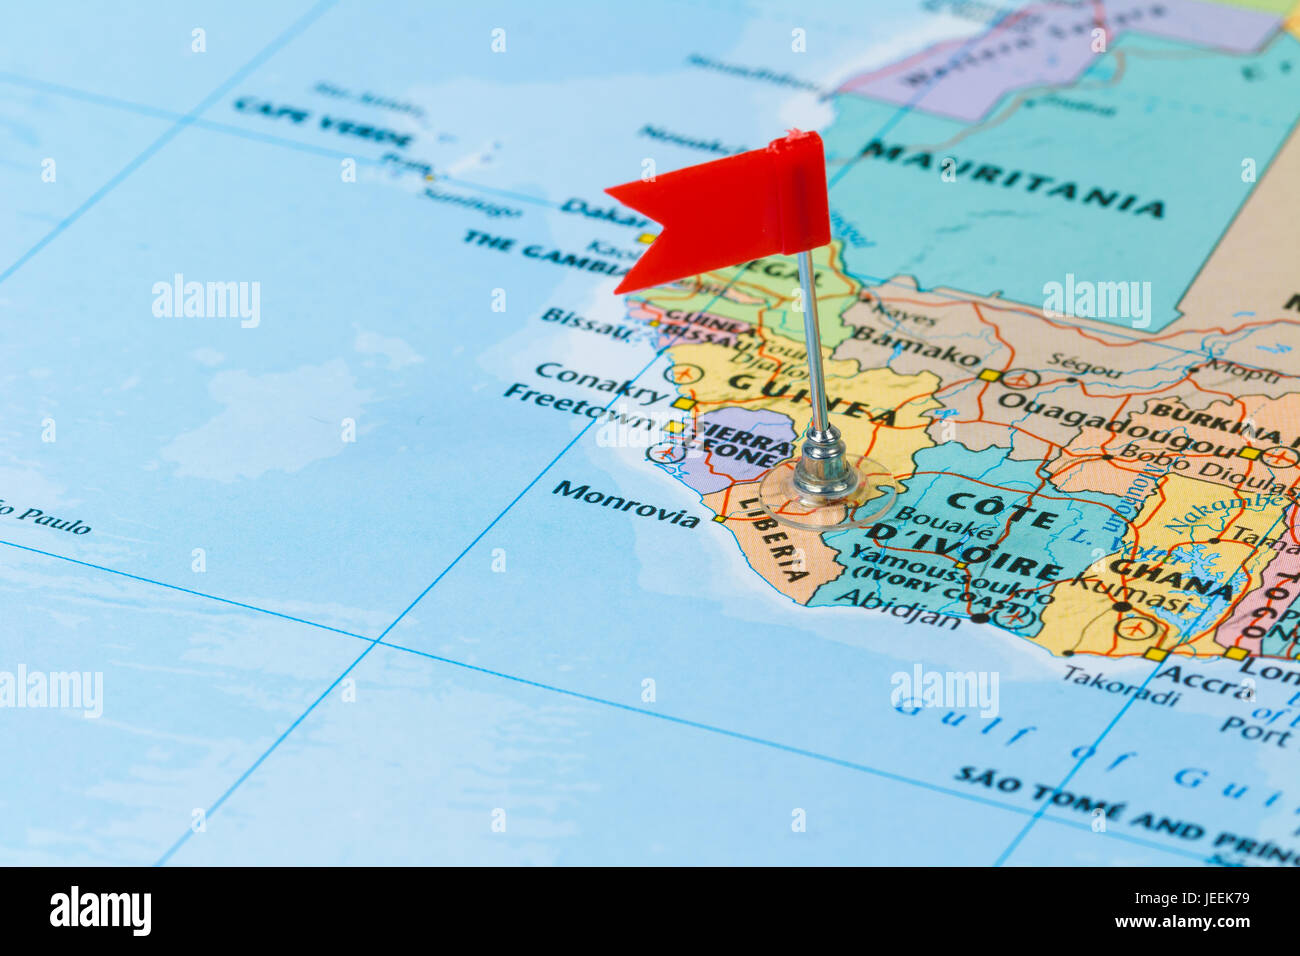 Photo of Liberia marked by red flag in holder. Country on African continent. - Stock Image